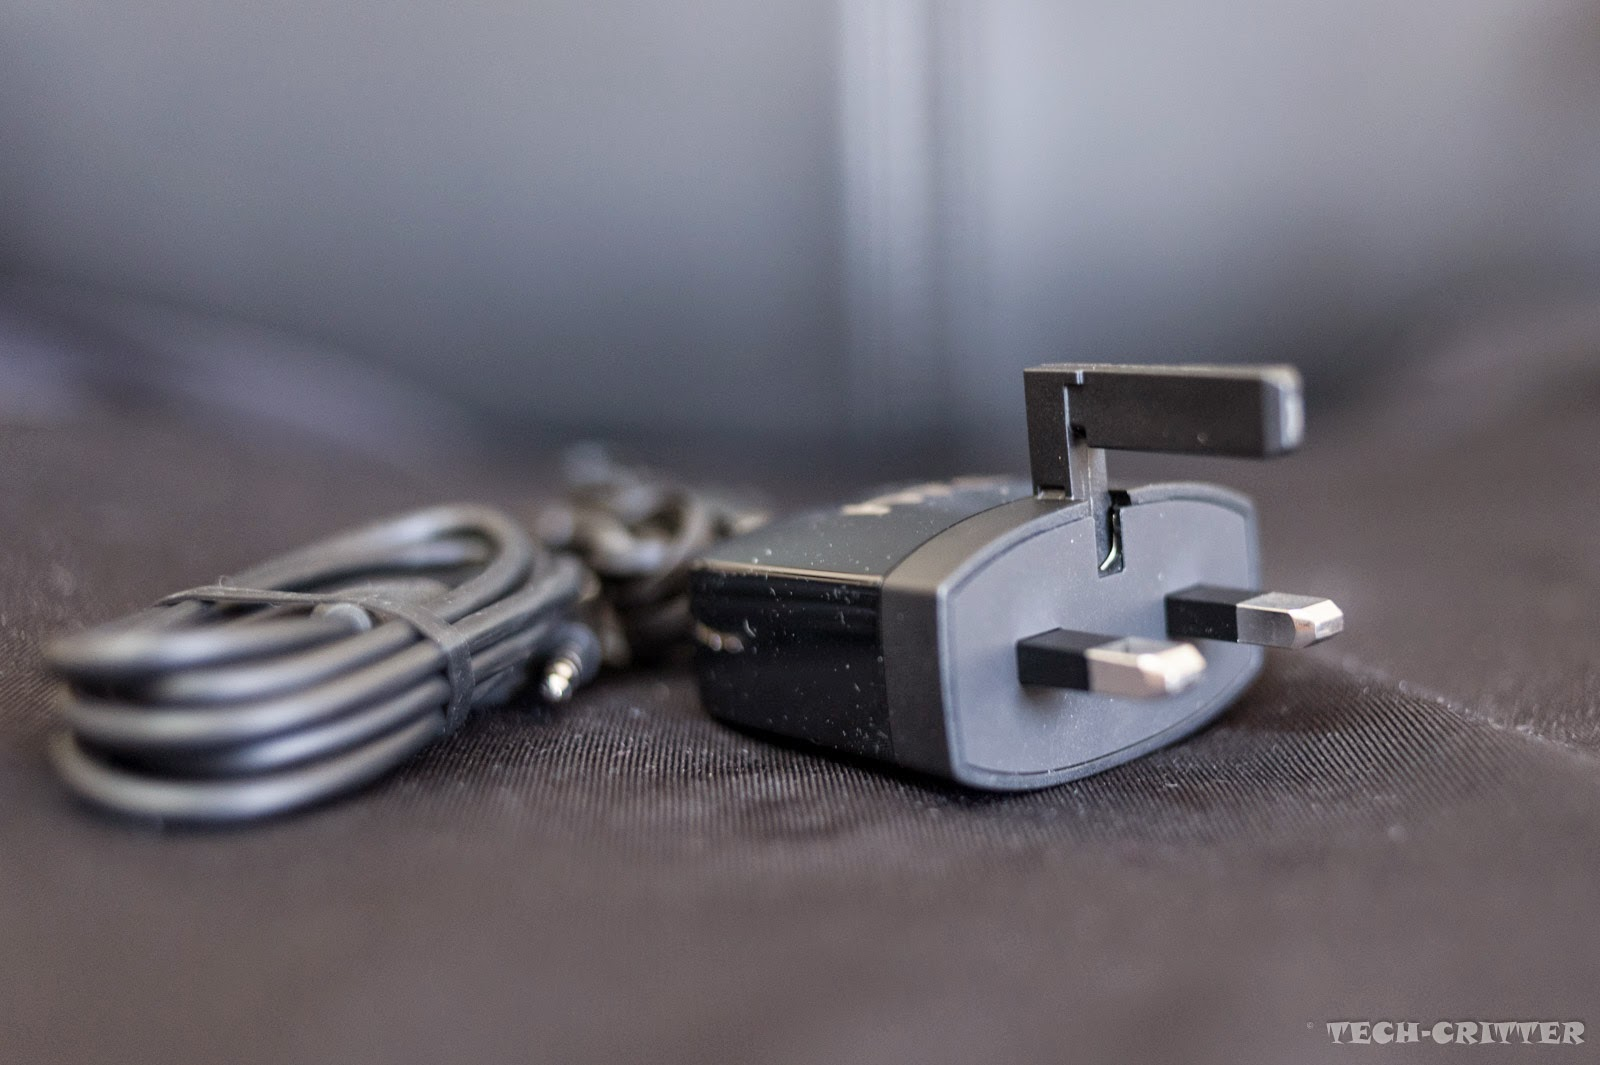 Rapid Wall Charger For Iphone